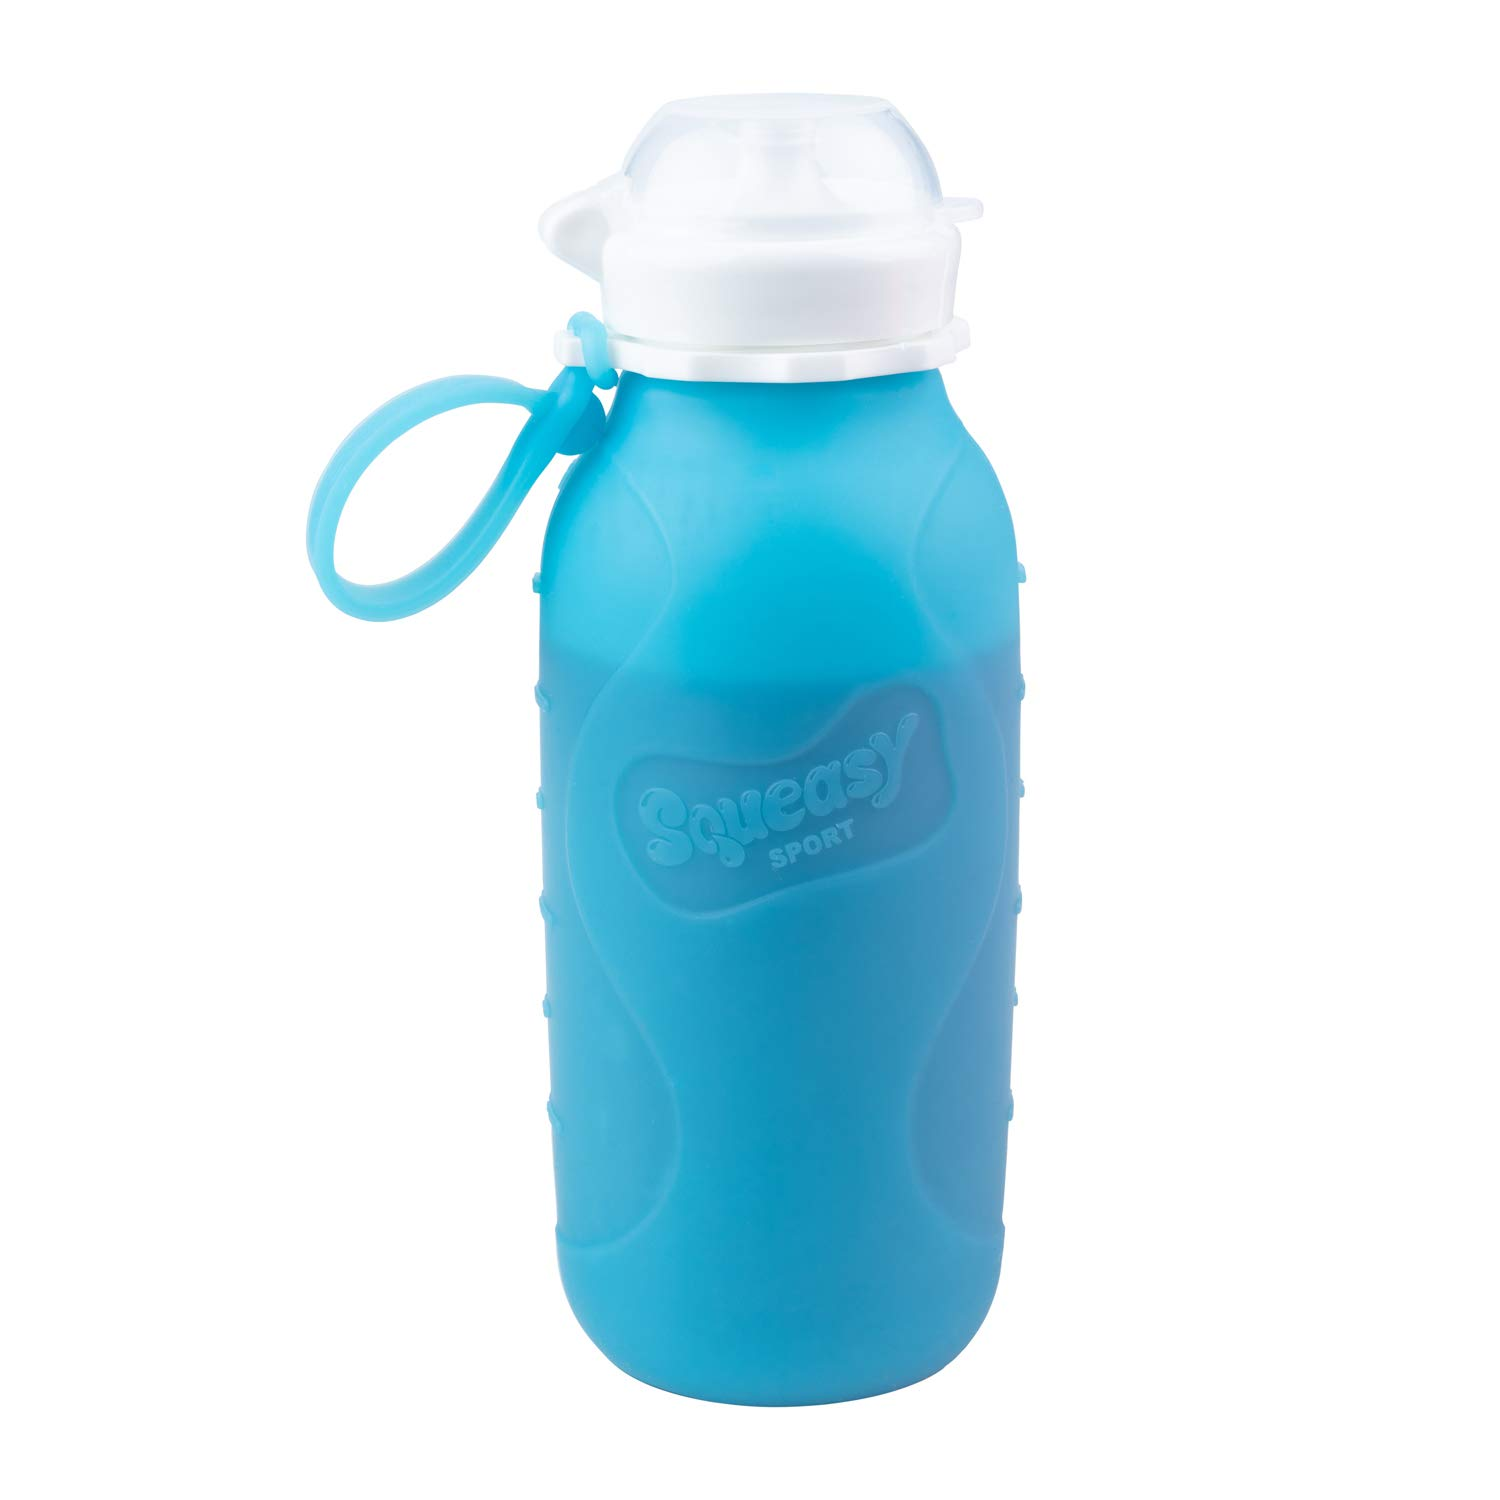 Blue 16 oz Squeasy Snacker Spill Proof Silicone Reusable Food Pouch - for Both Soft Foods and Liquids - Water, Apple Sauce, Yogurt, Smoothies, Baby Food - Dishwasher Safe